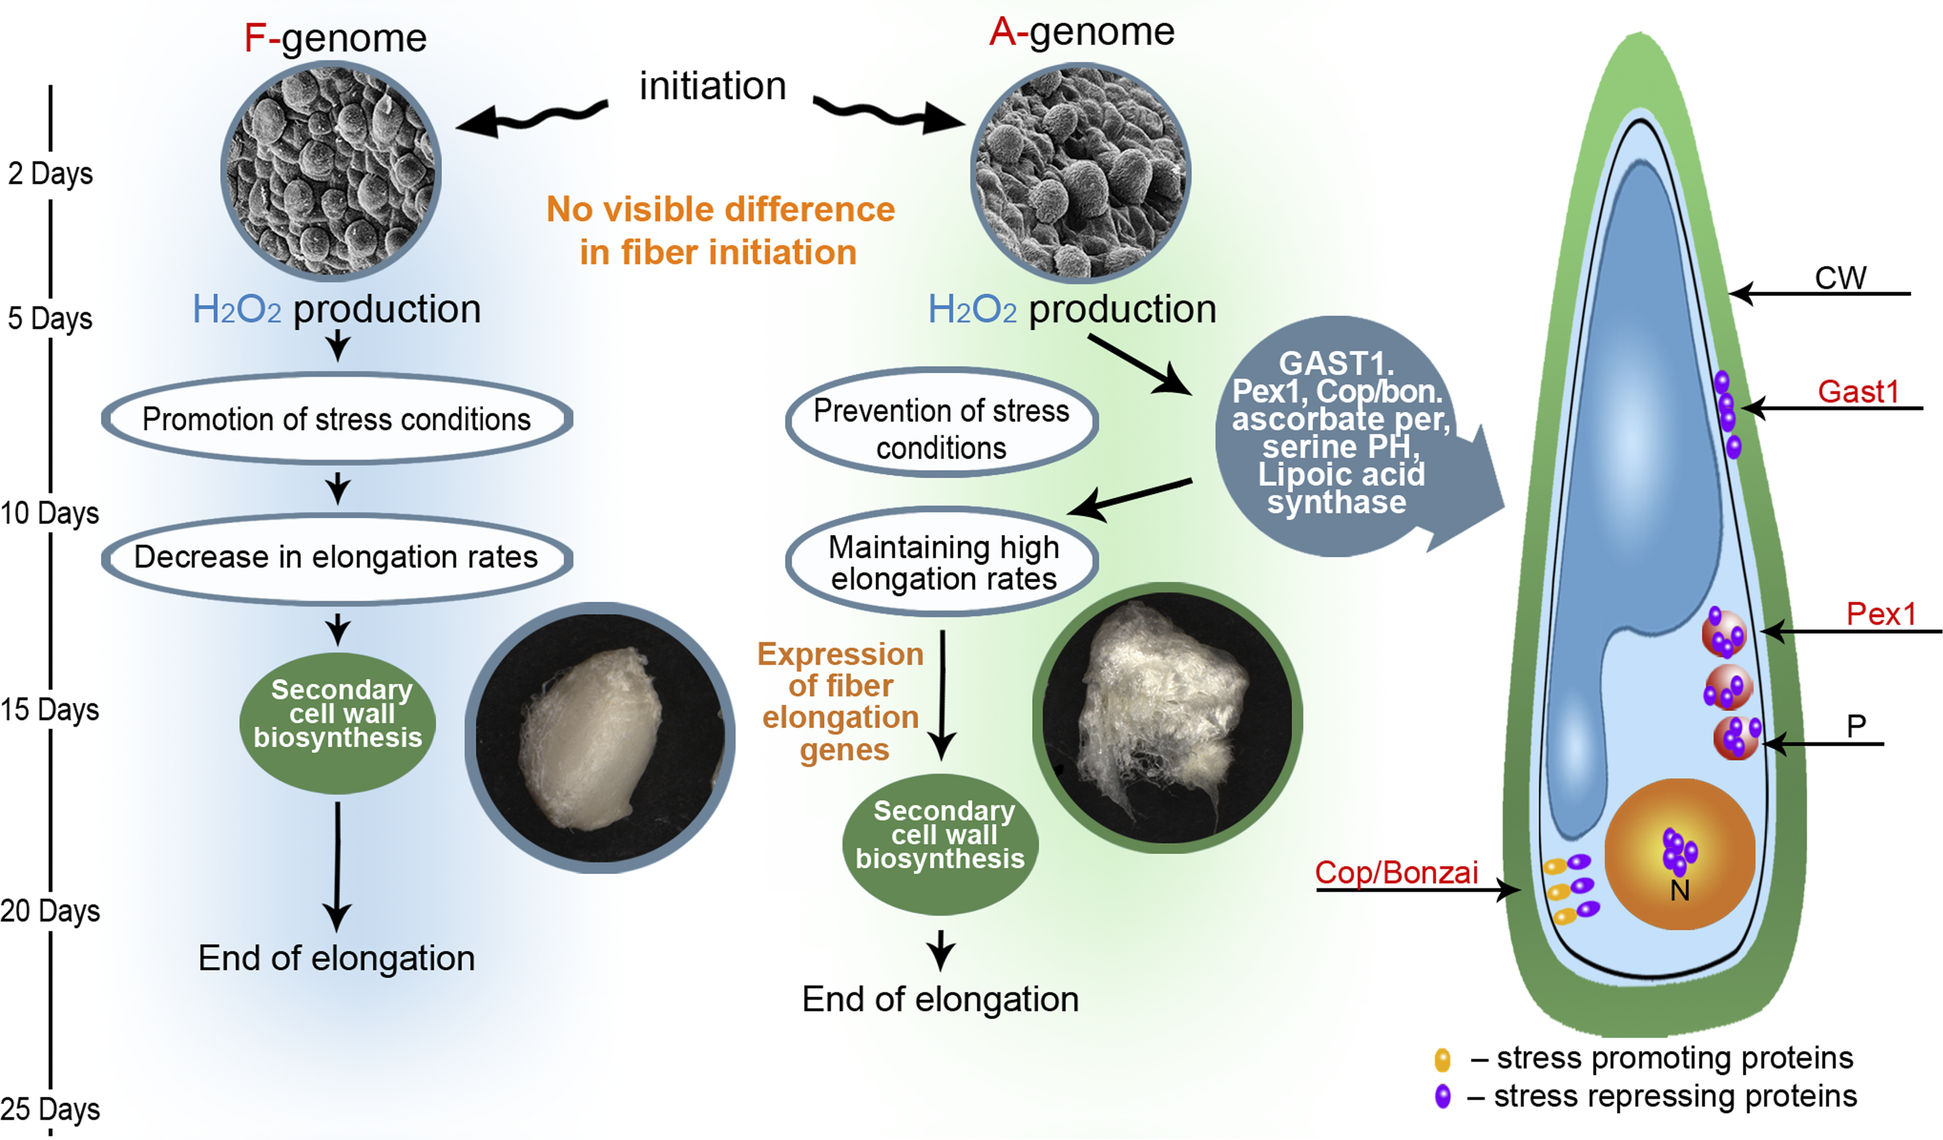 An Evolutionary and Development Model Describing Processes That Lead to the Formation of Spinnable Fiber